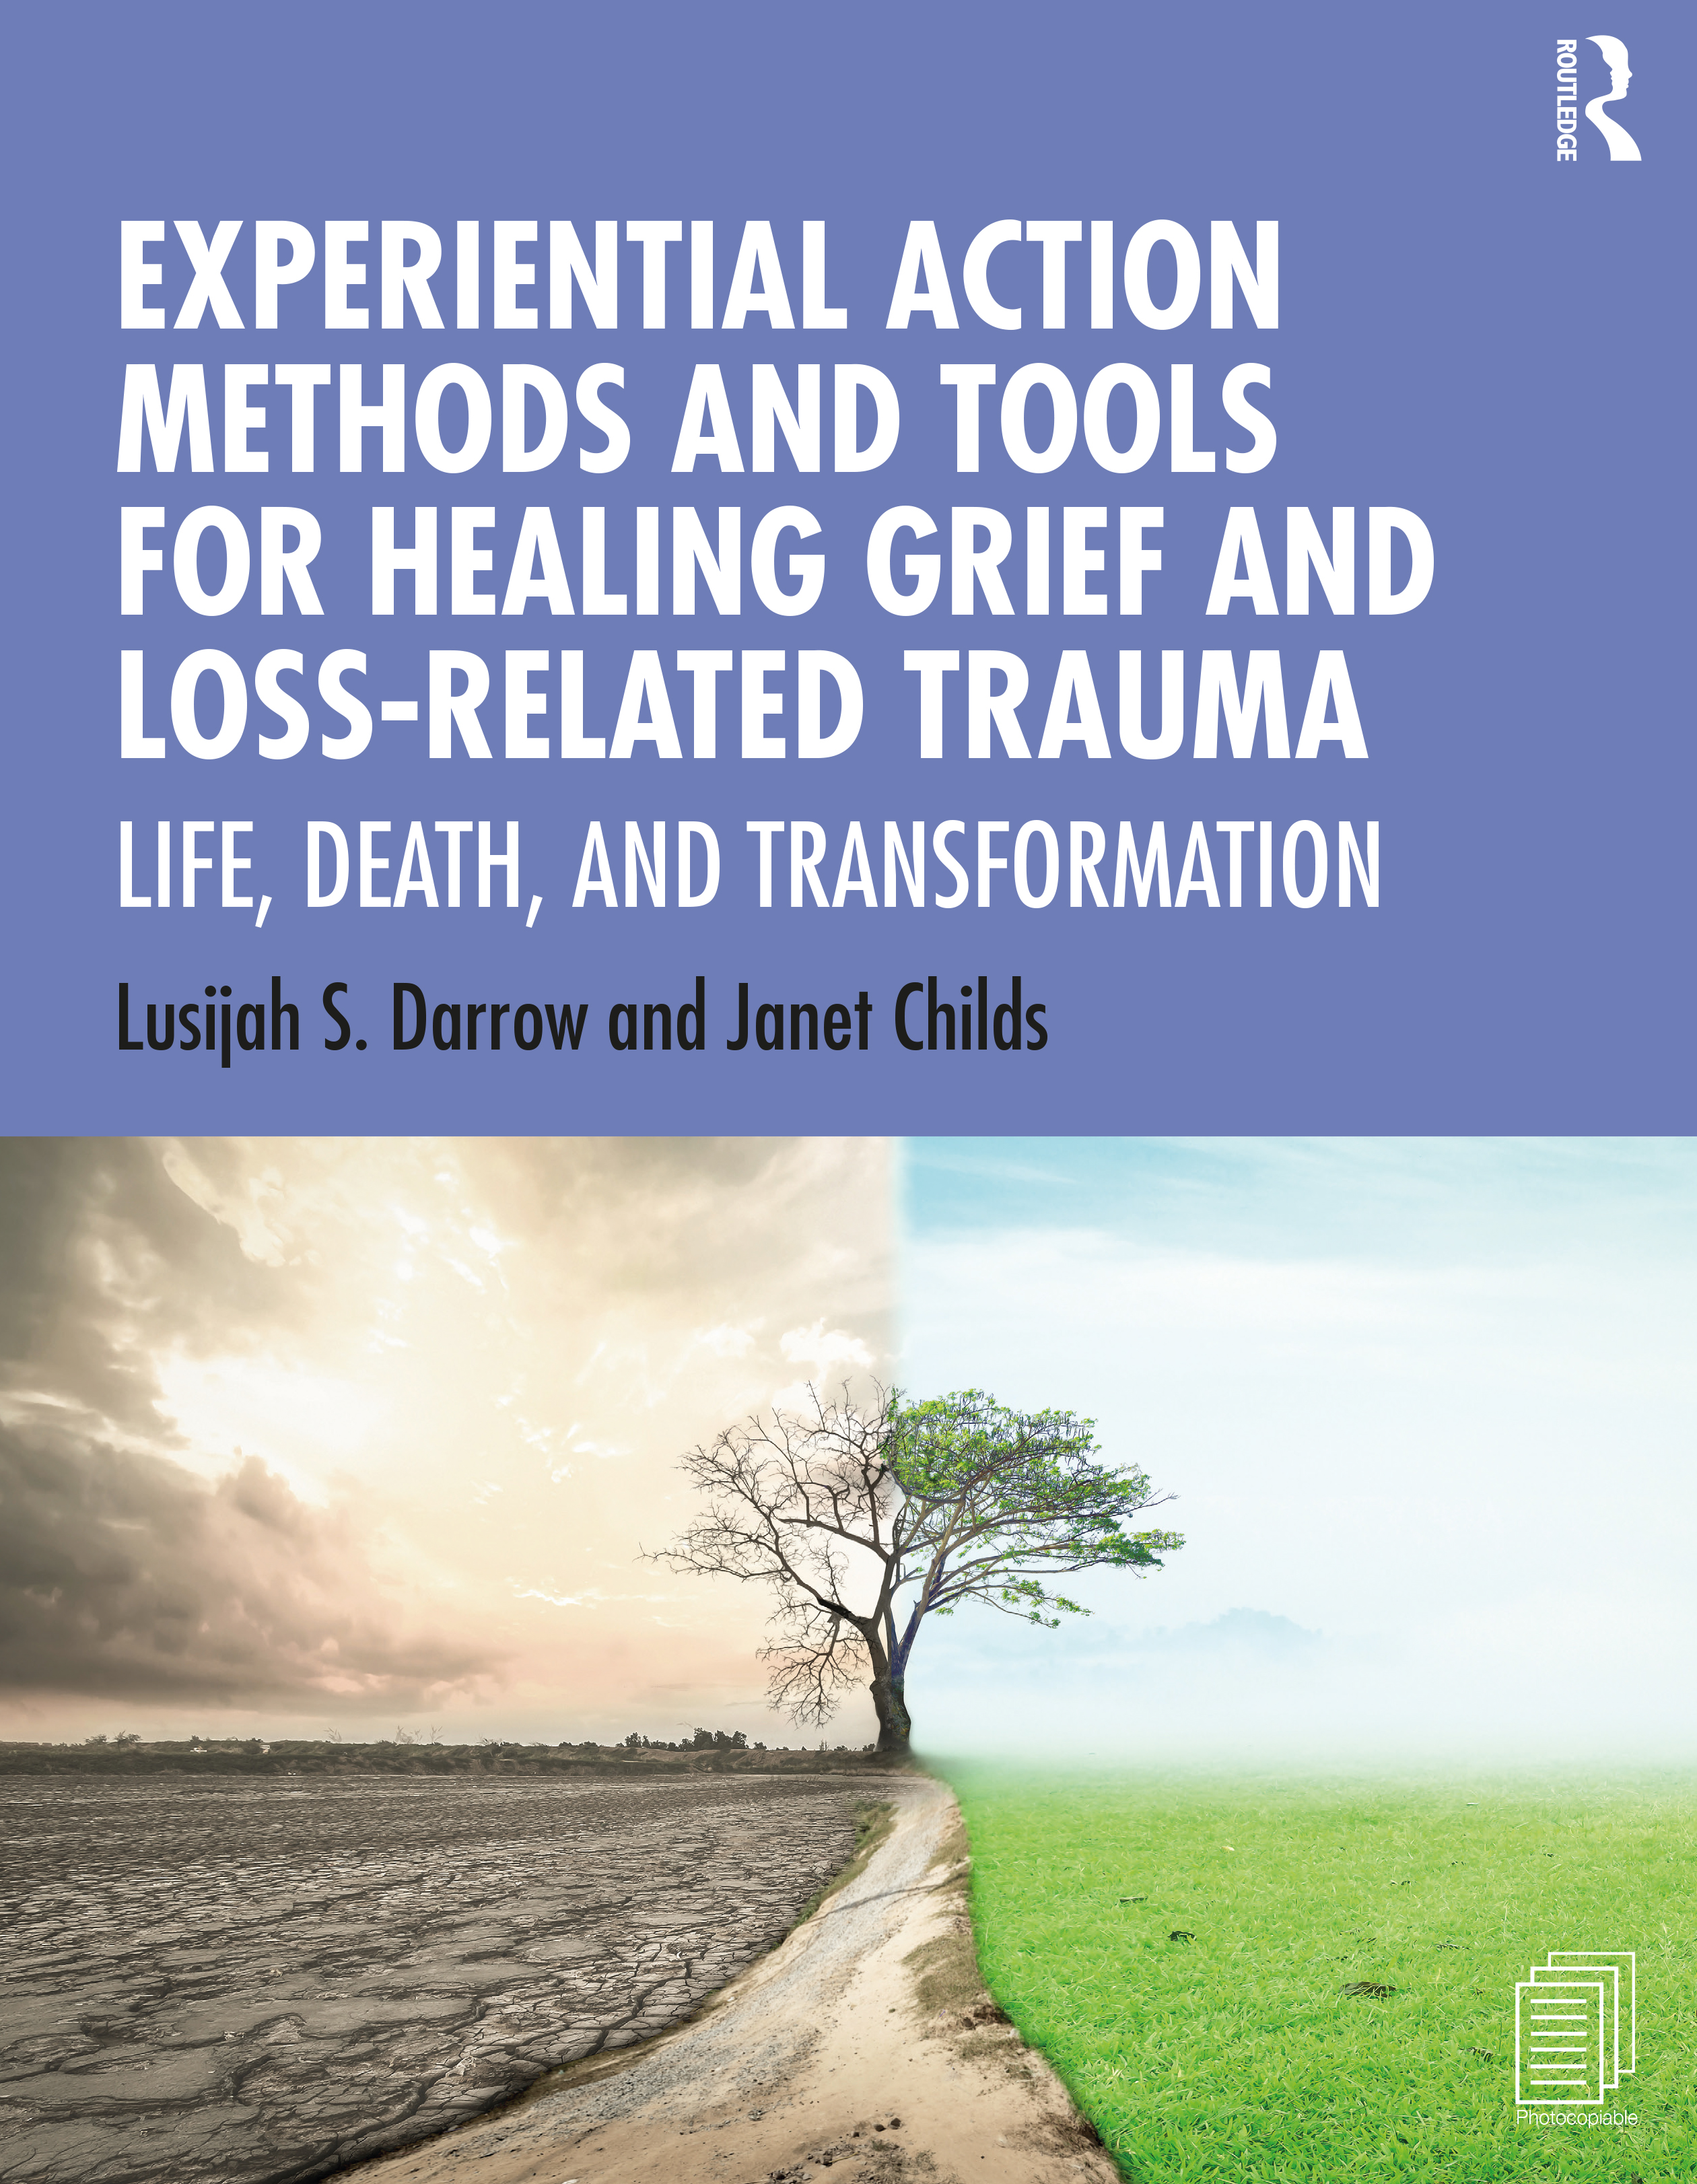 Experiential Action Methods and Tools for Healing Grief and Loss-Related Trauma: Life, Death, and Transformation book cover